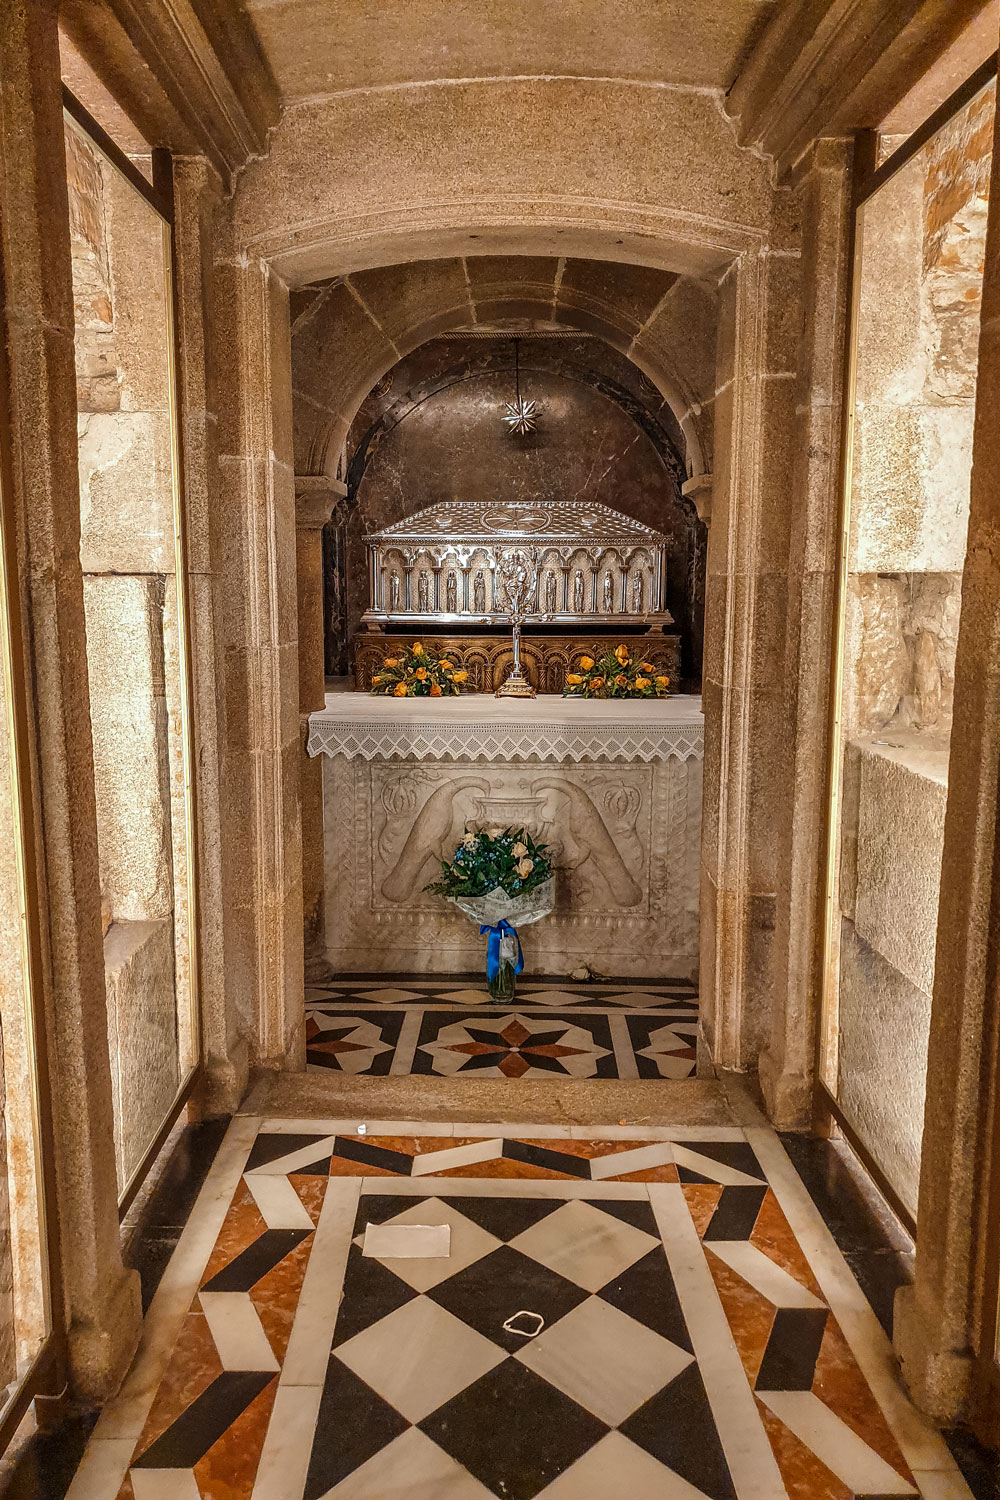 Tomb of Saint James the Great, the apostle of Jesus Christ